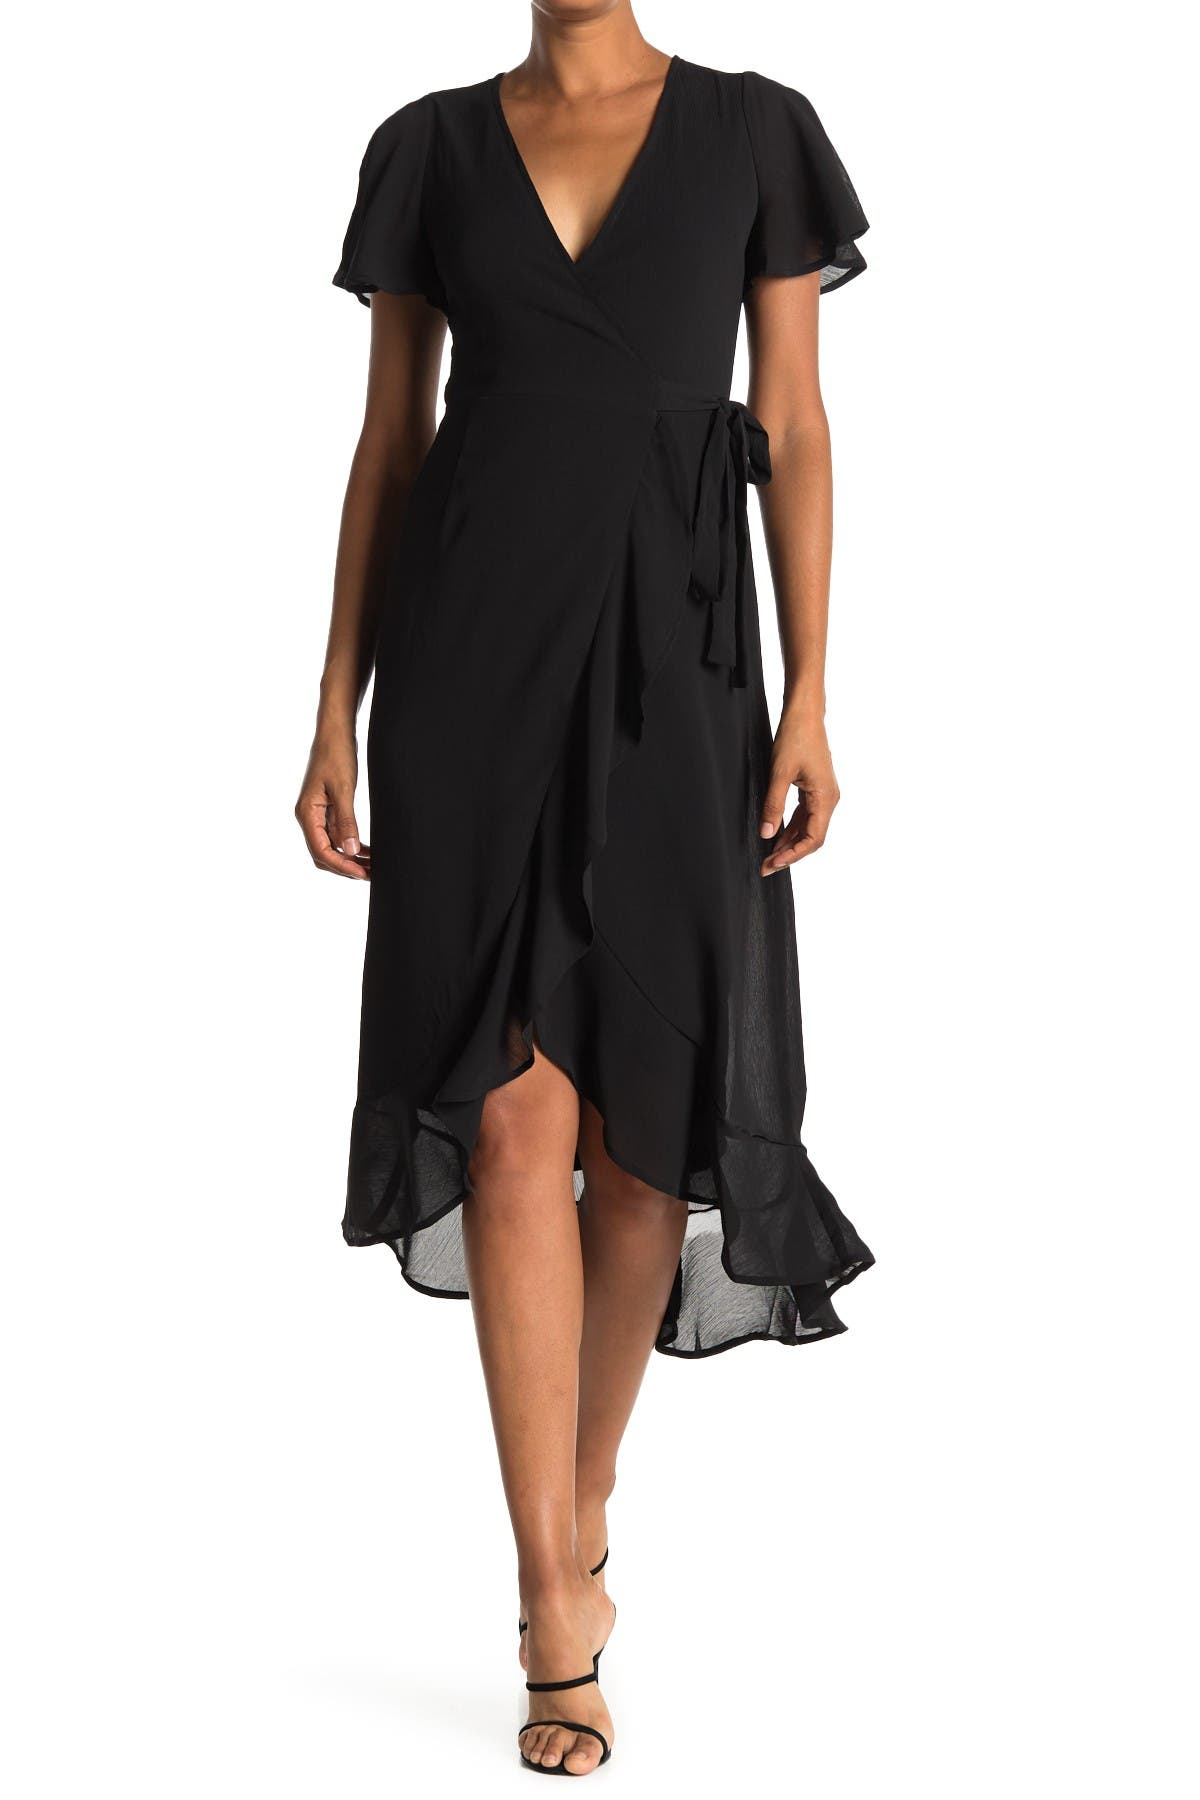 Image of FAVLUX Flutter Sleeve Wrap Midi Dress